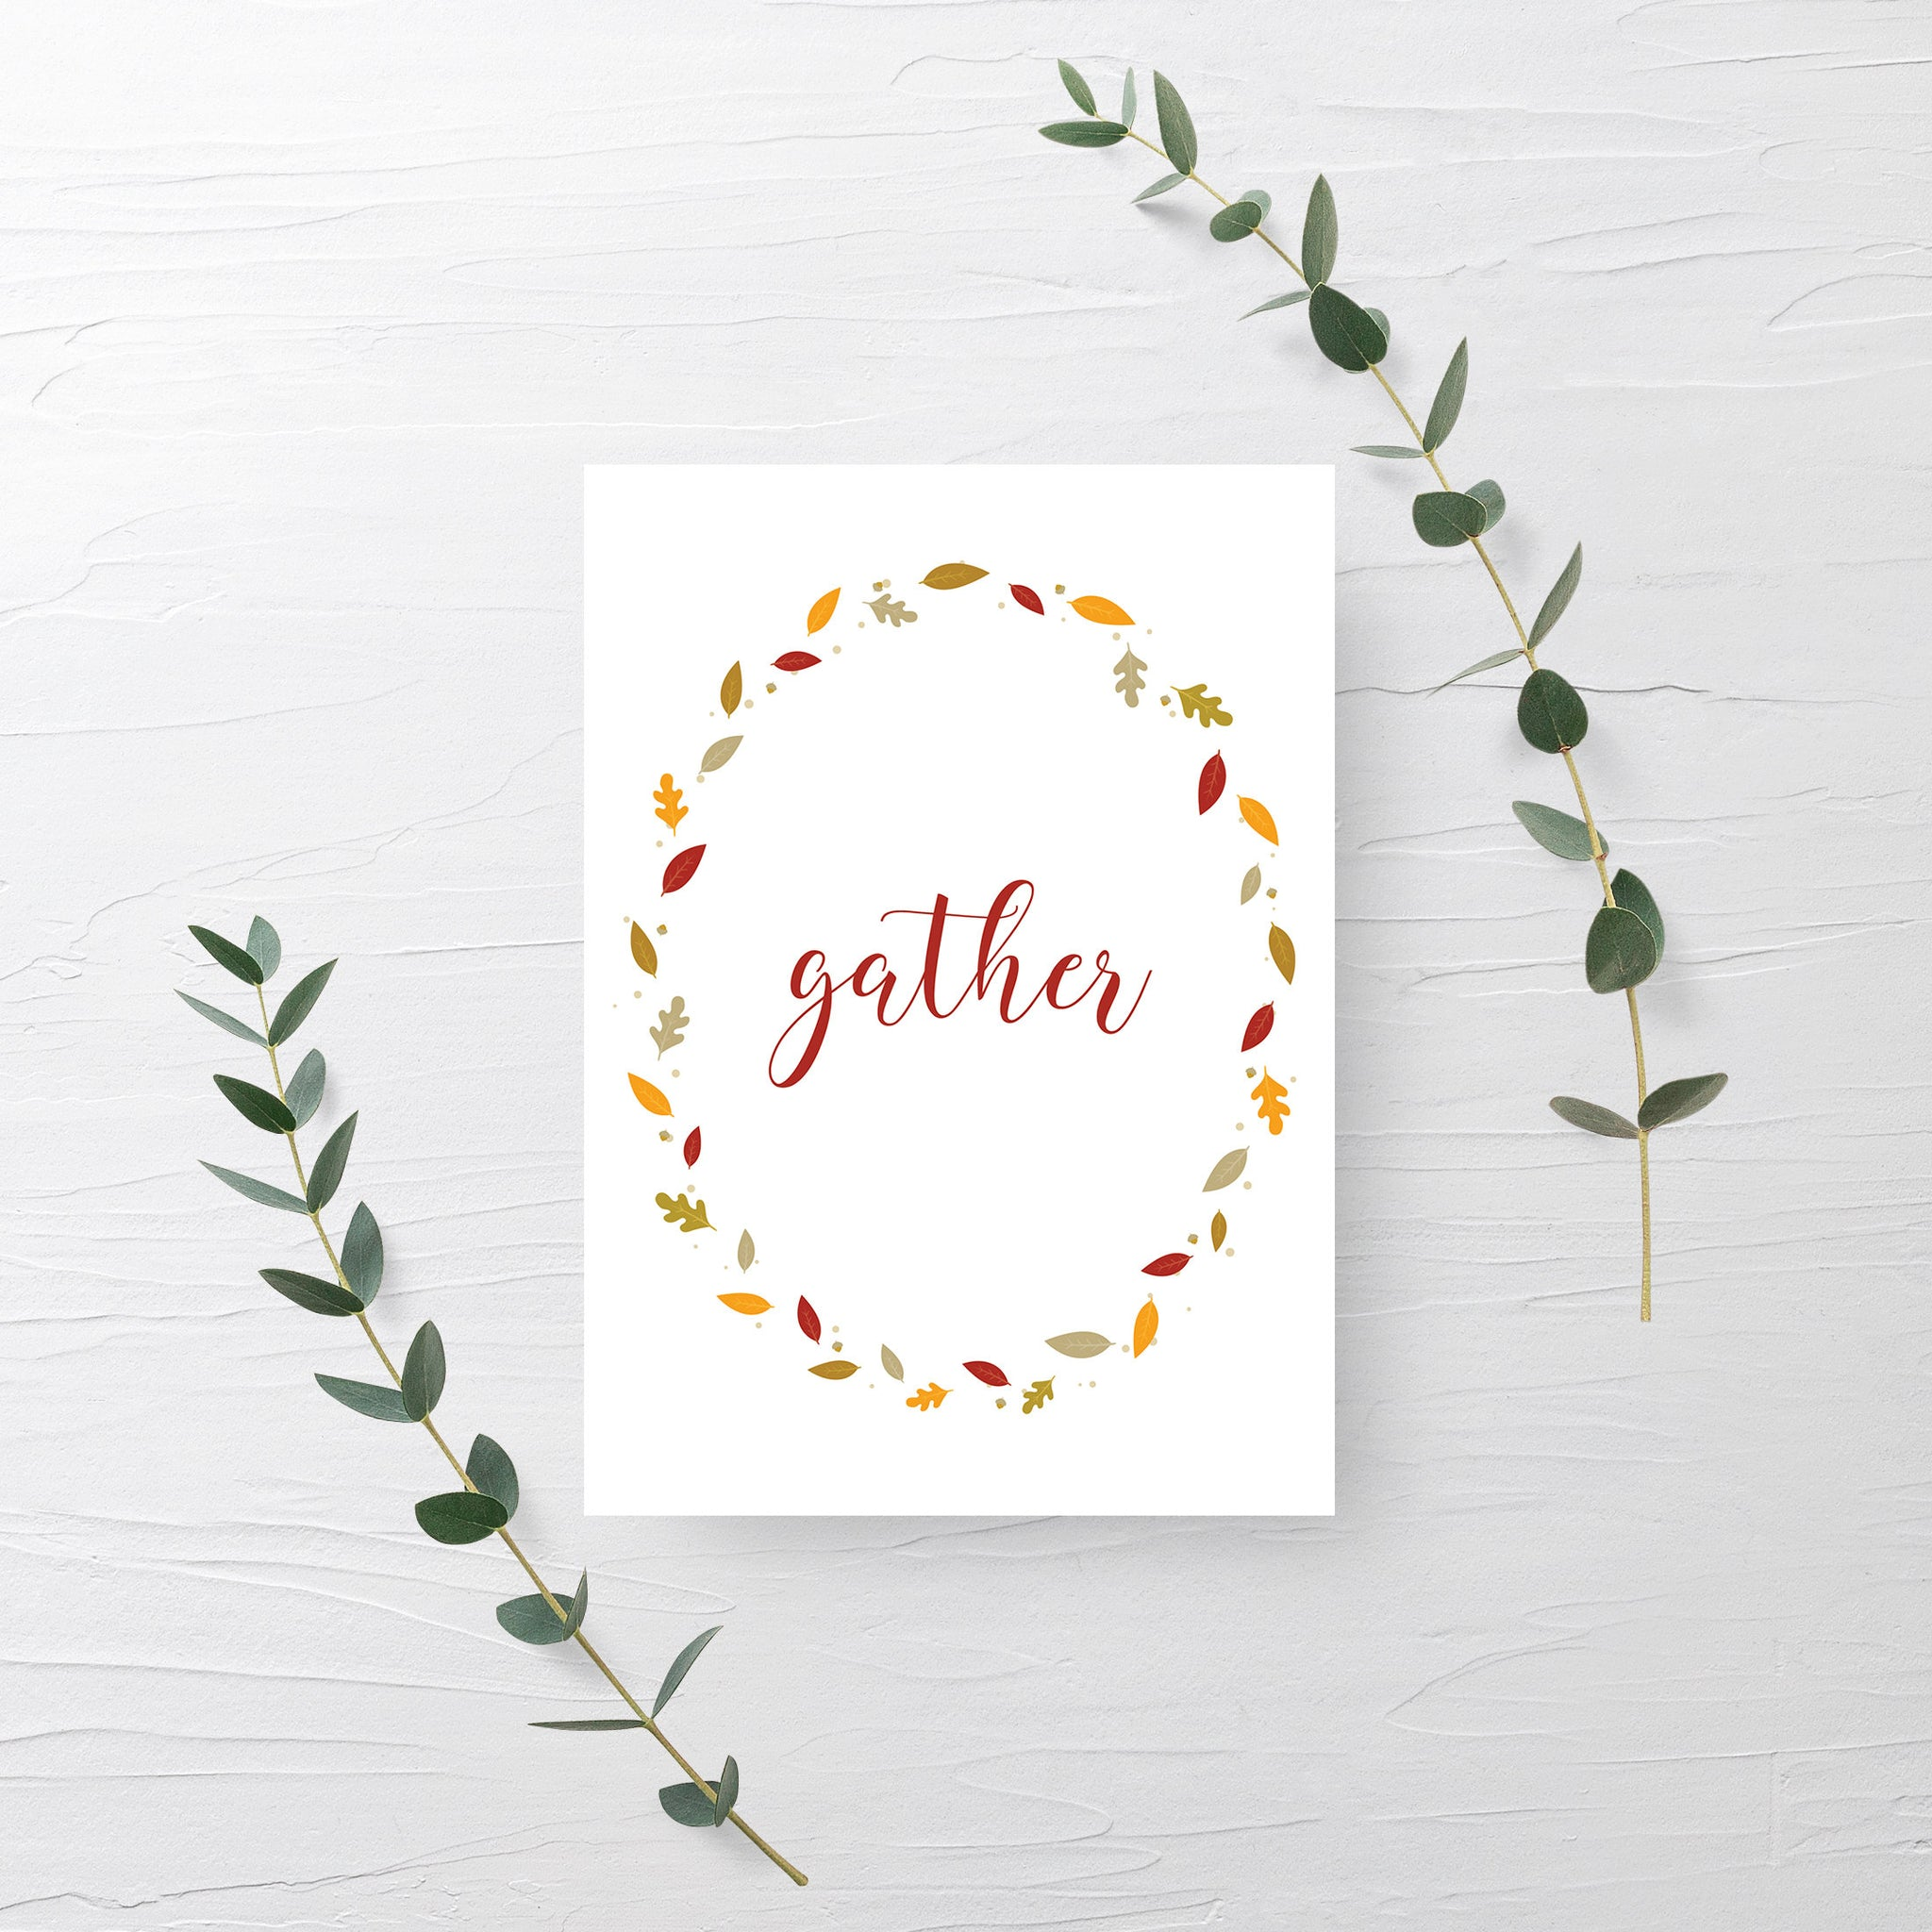 Gather Sign Printable, Thanksgiving Decor, Thanksgiving Signs Printable, Fall Decor for Mantle, INSTANT DOWNLOAD - FL100 - @PlumPolkaDot